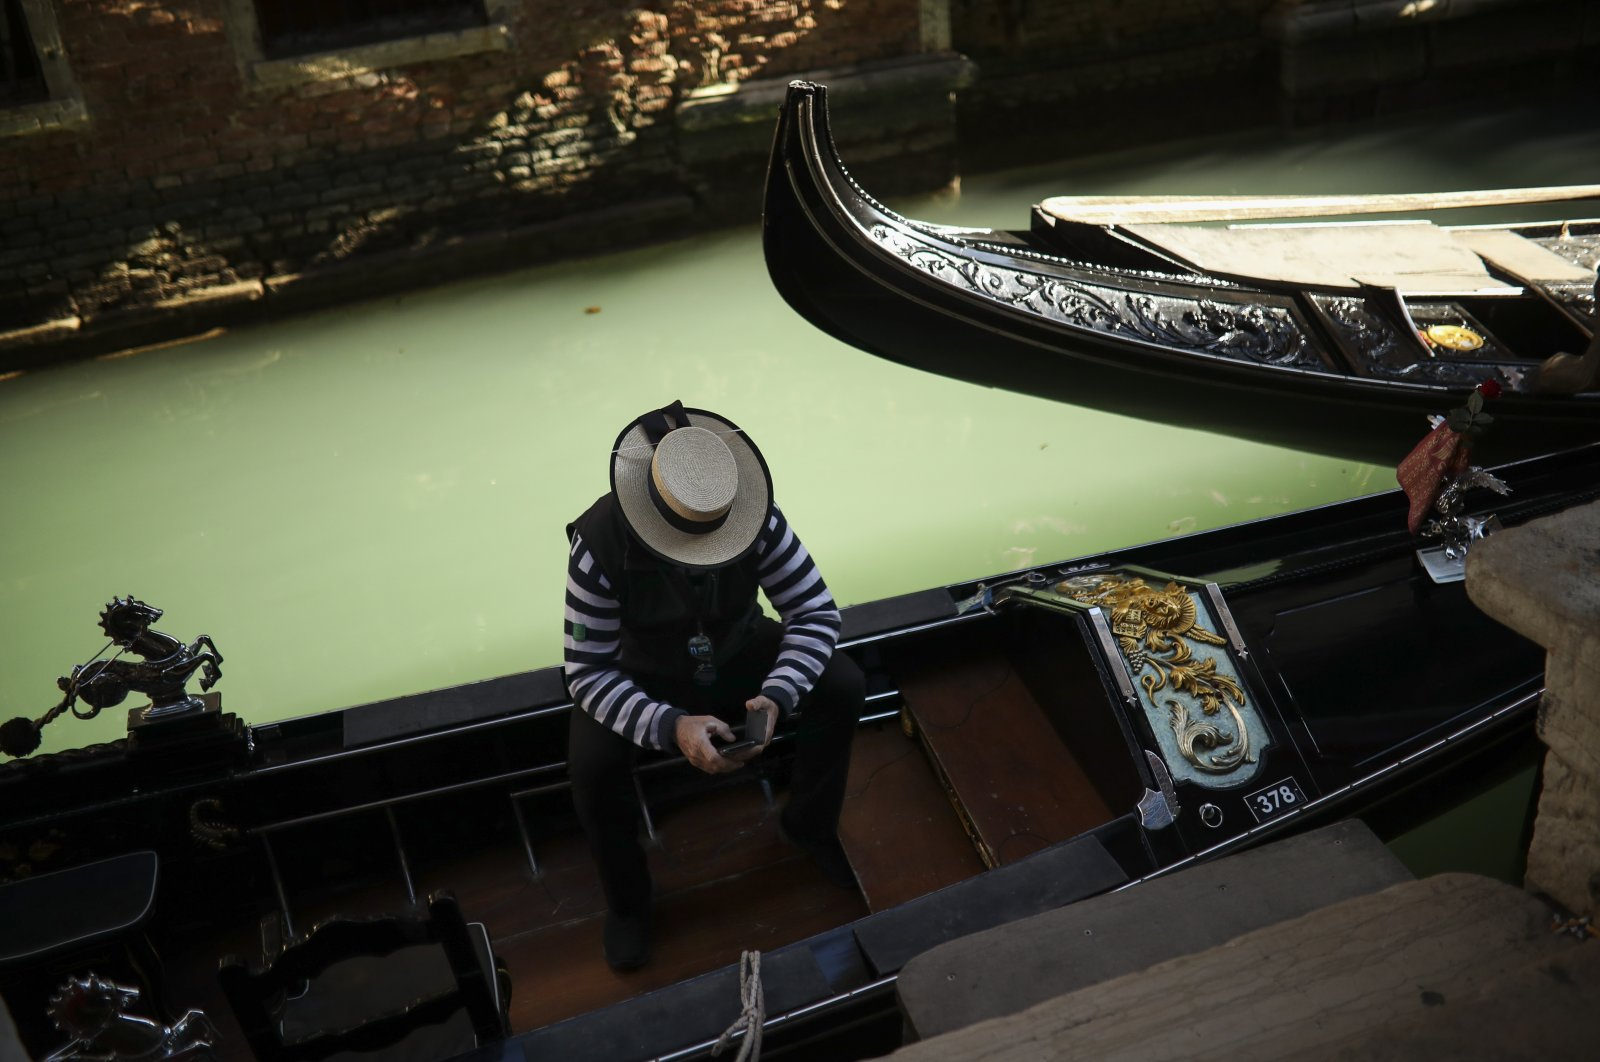 A gondolier looks at his smartphone as he waits for clients in Venice, Italy, Feb. 28, 2020. (AP Photo)